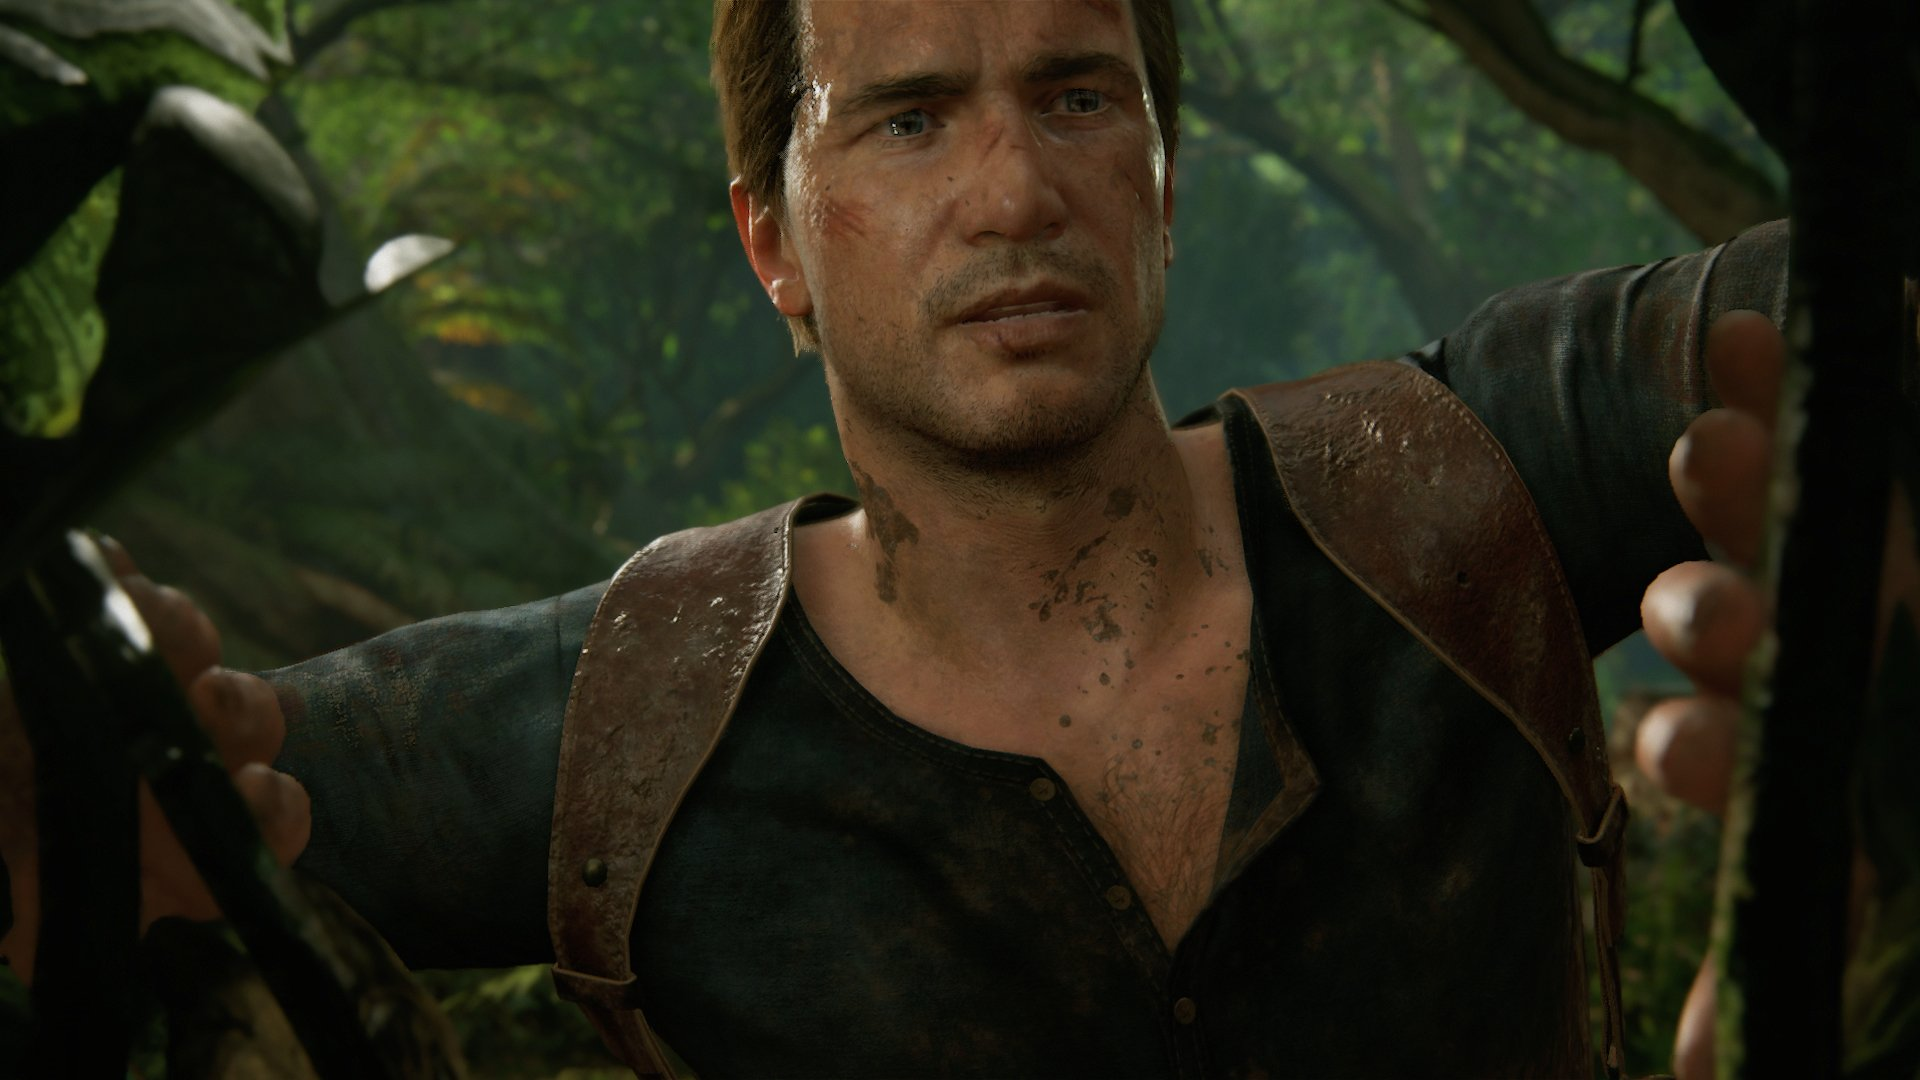 'Uncharted 4: A Thief's End' gets a beautiful story trailer